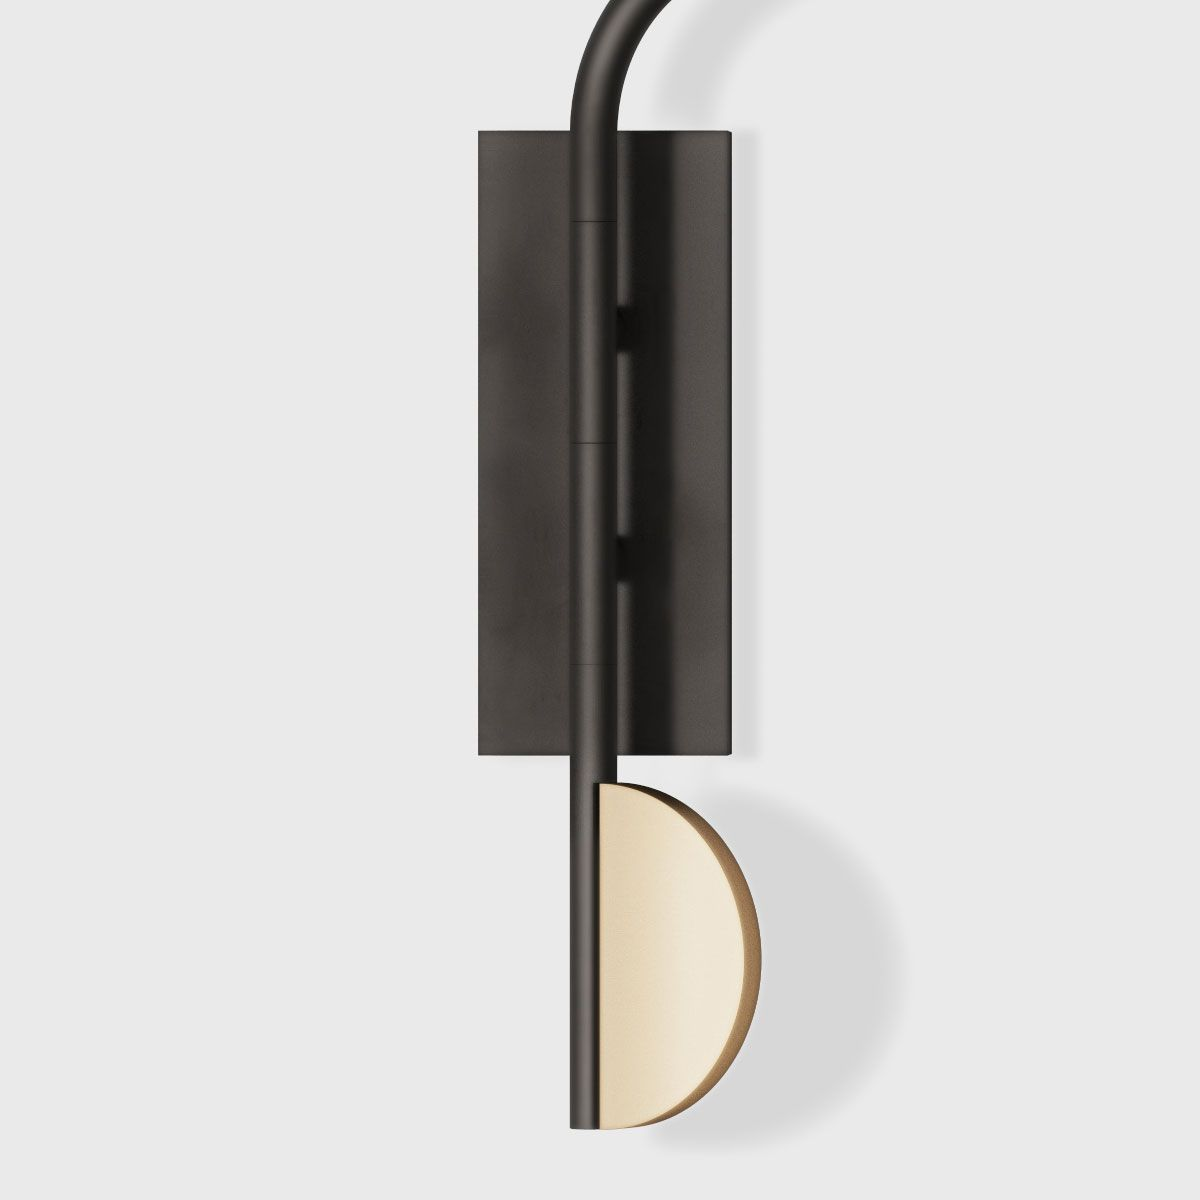 Discus Swing | Jamie Gray pour Matter Made #design #luminaire ... - Discus Swing | Jamie Gray pour Matter Made #design #luminaire #decor  #interiordesign